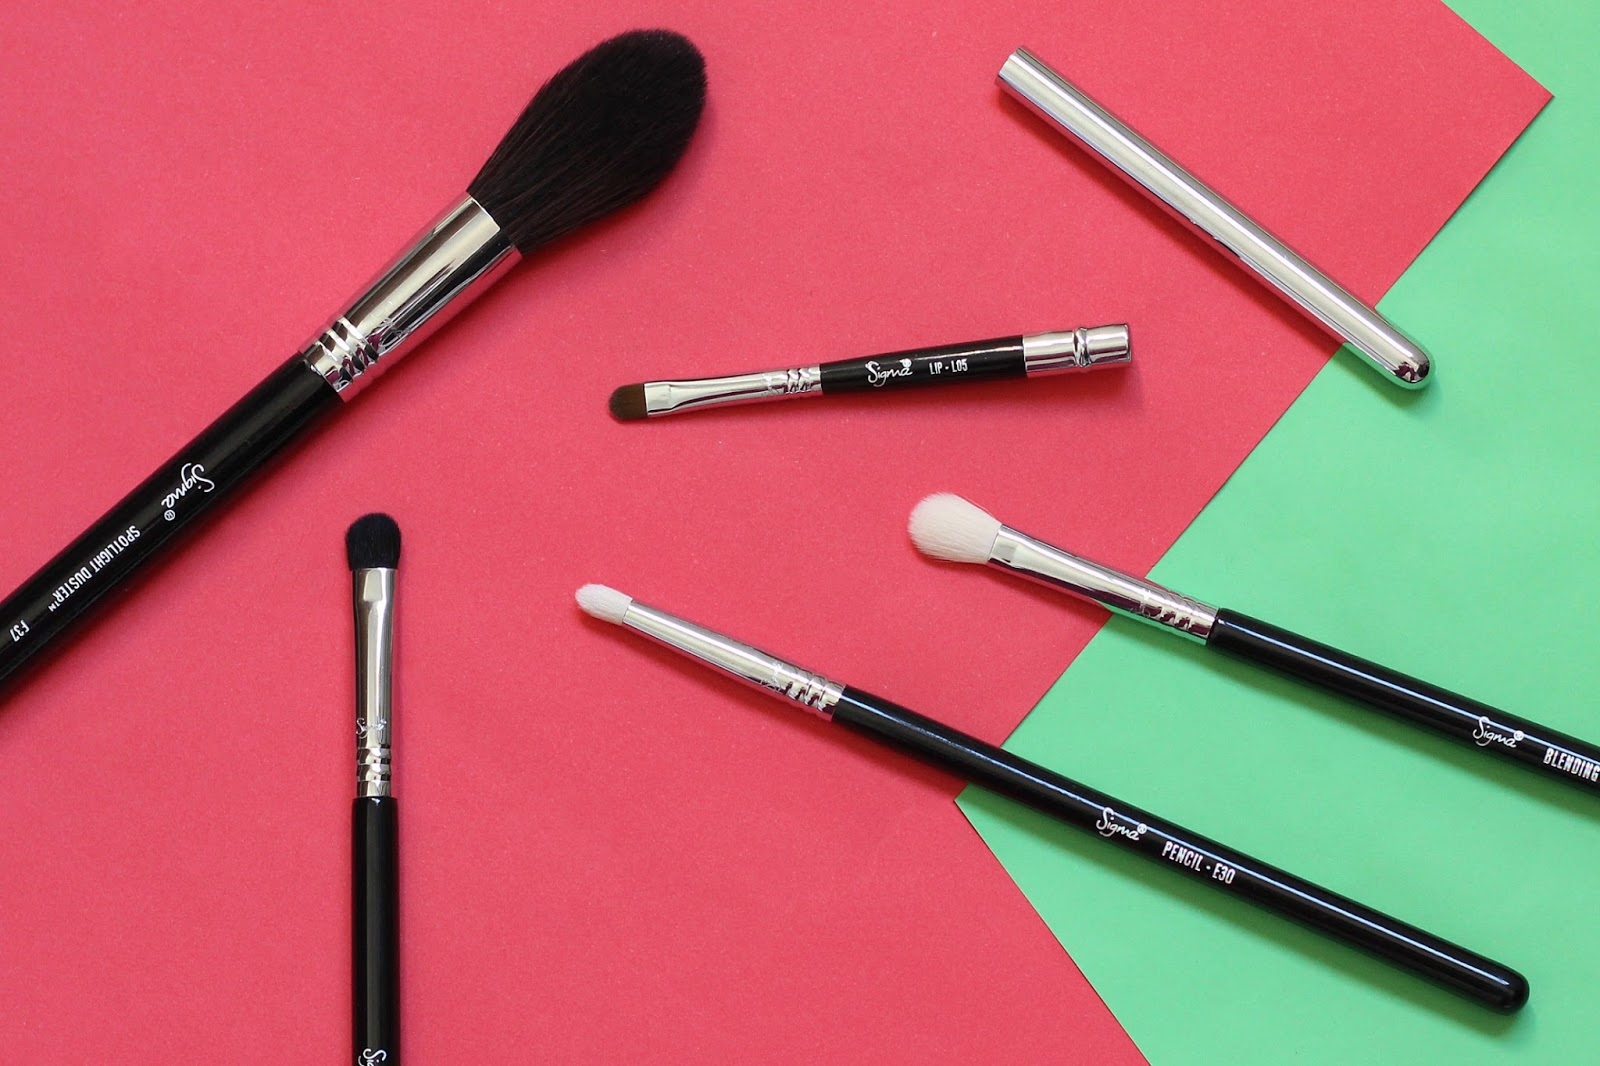 Sigma Beauty Brushes E25, E30, E32, F37, L05 Review